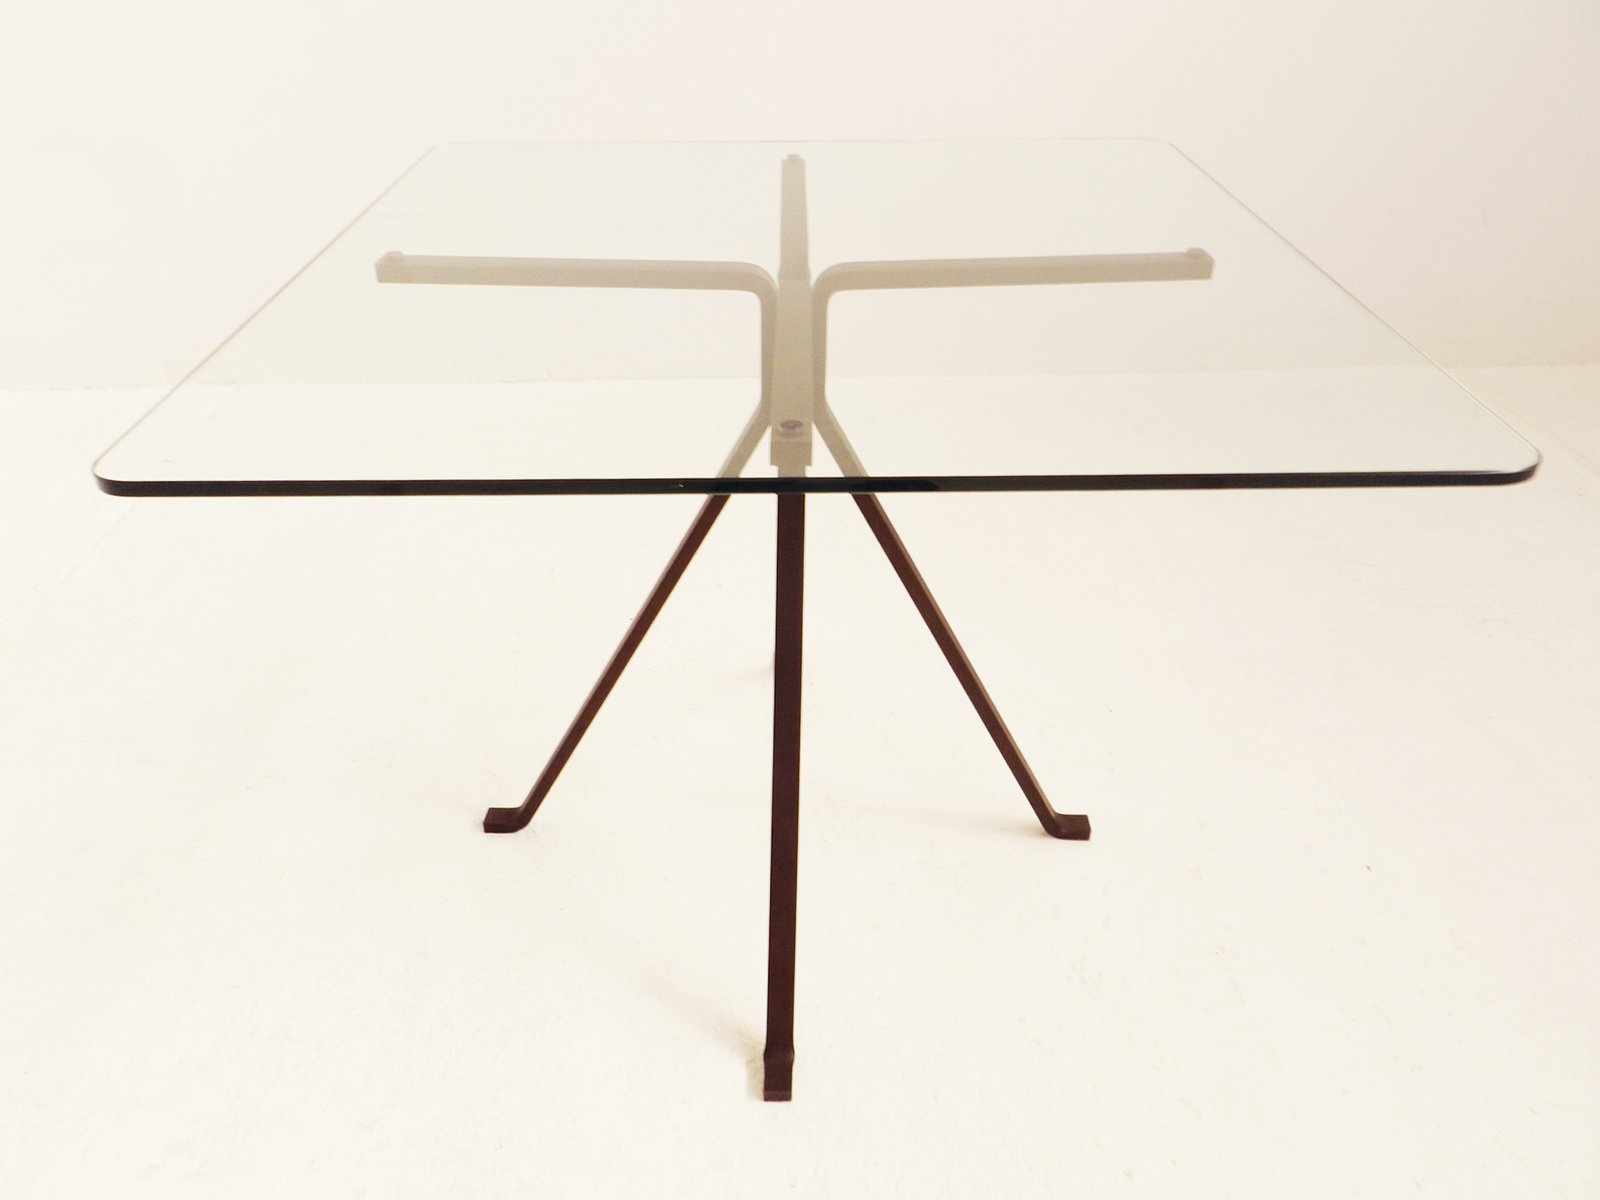 Cuginetto side table by enzo mari for driade for sale at for Design tisch enzo